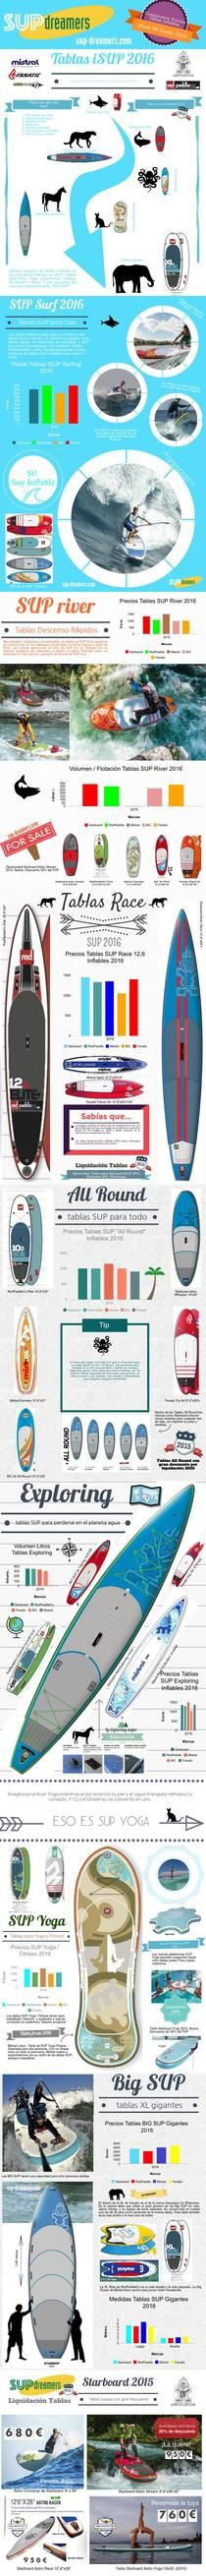 Tablas Stand Up Paddle 2016 Stand Up Paddle, Editor, Infographic, Surfing, Kids Rugs, Stand Up Paddling, Boards, Infographics, Kid Friendly Rugs